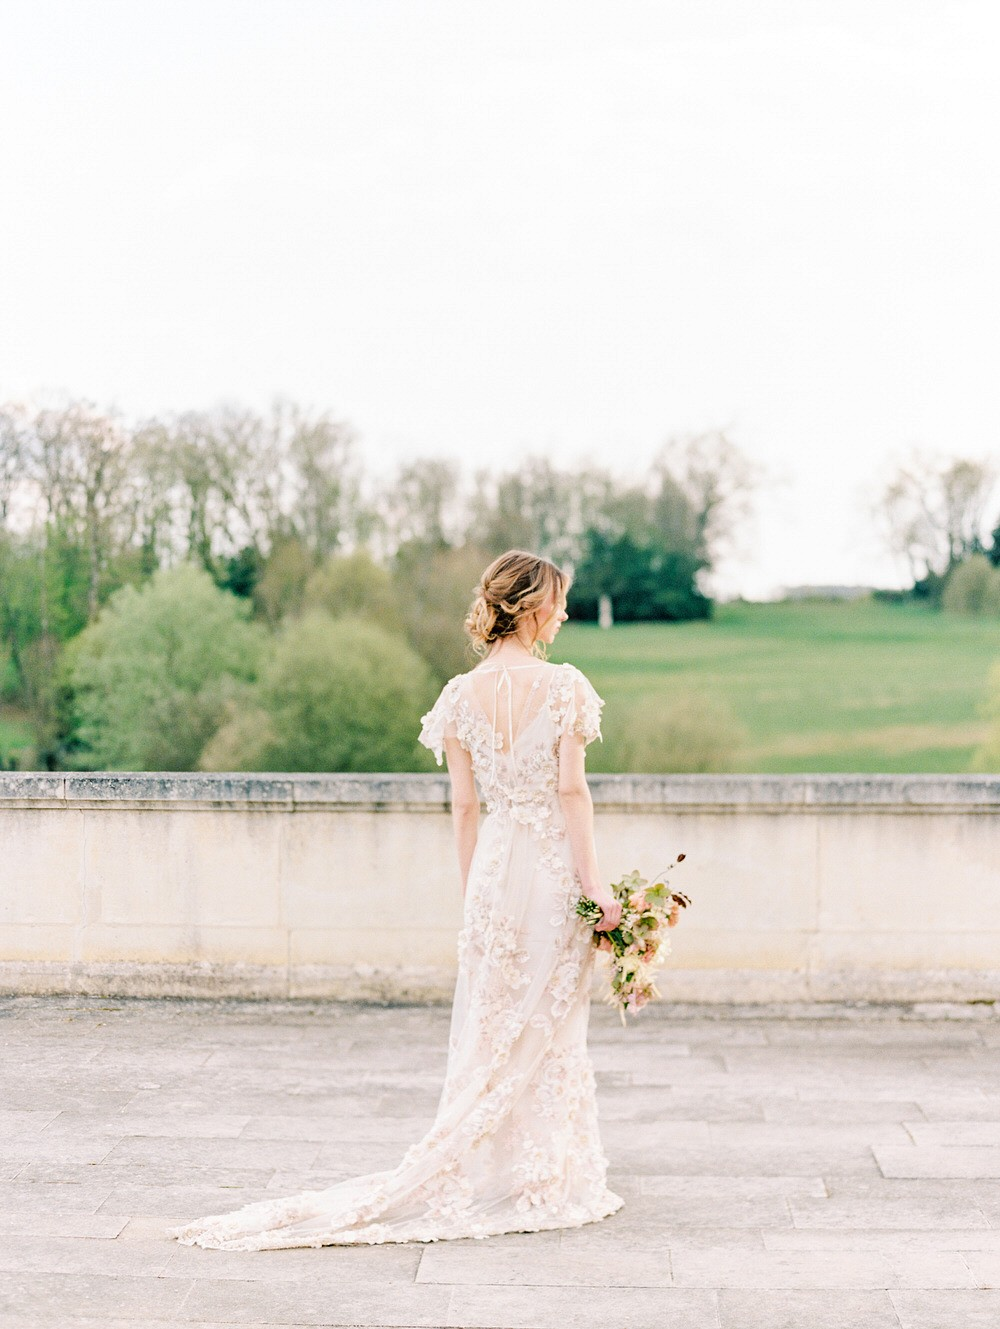 Fairytale destination wedding in France